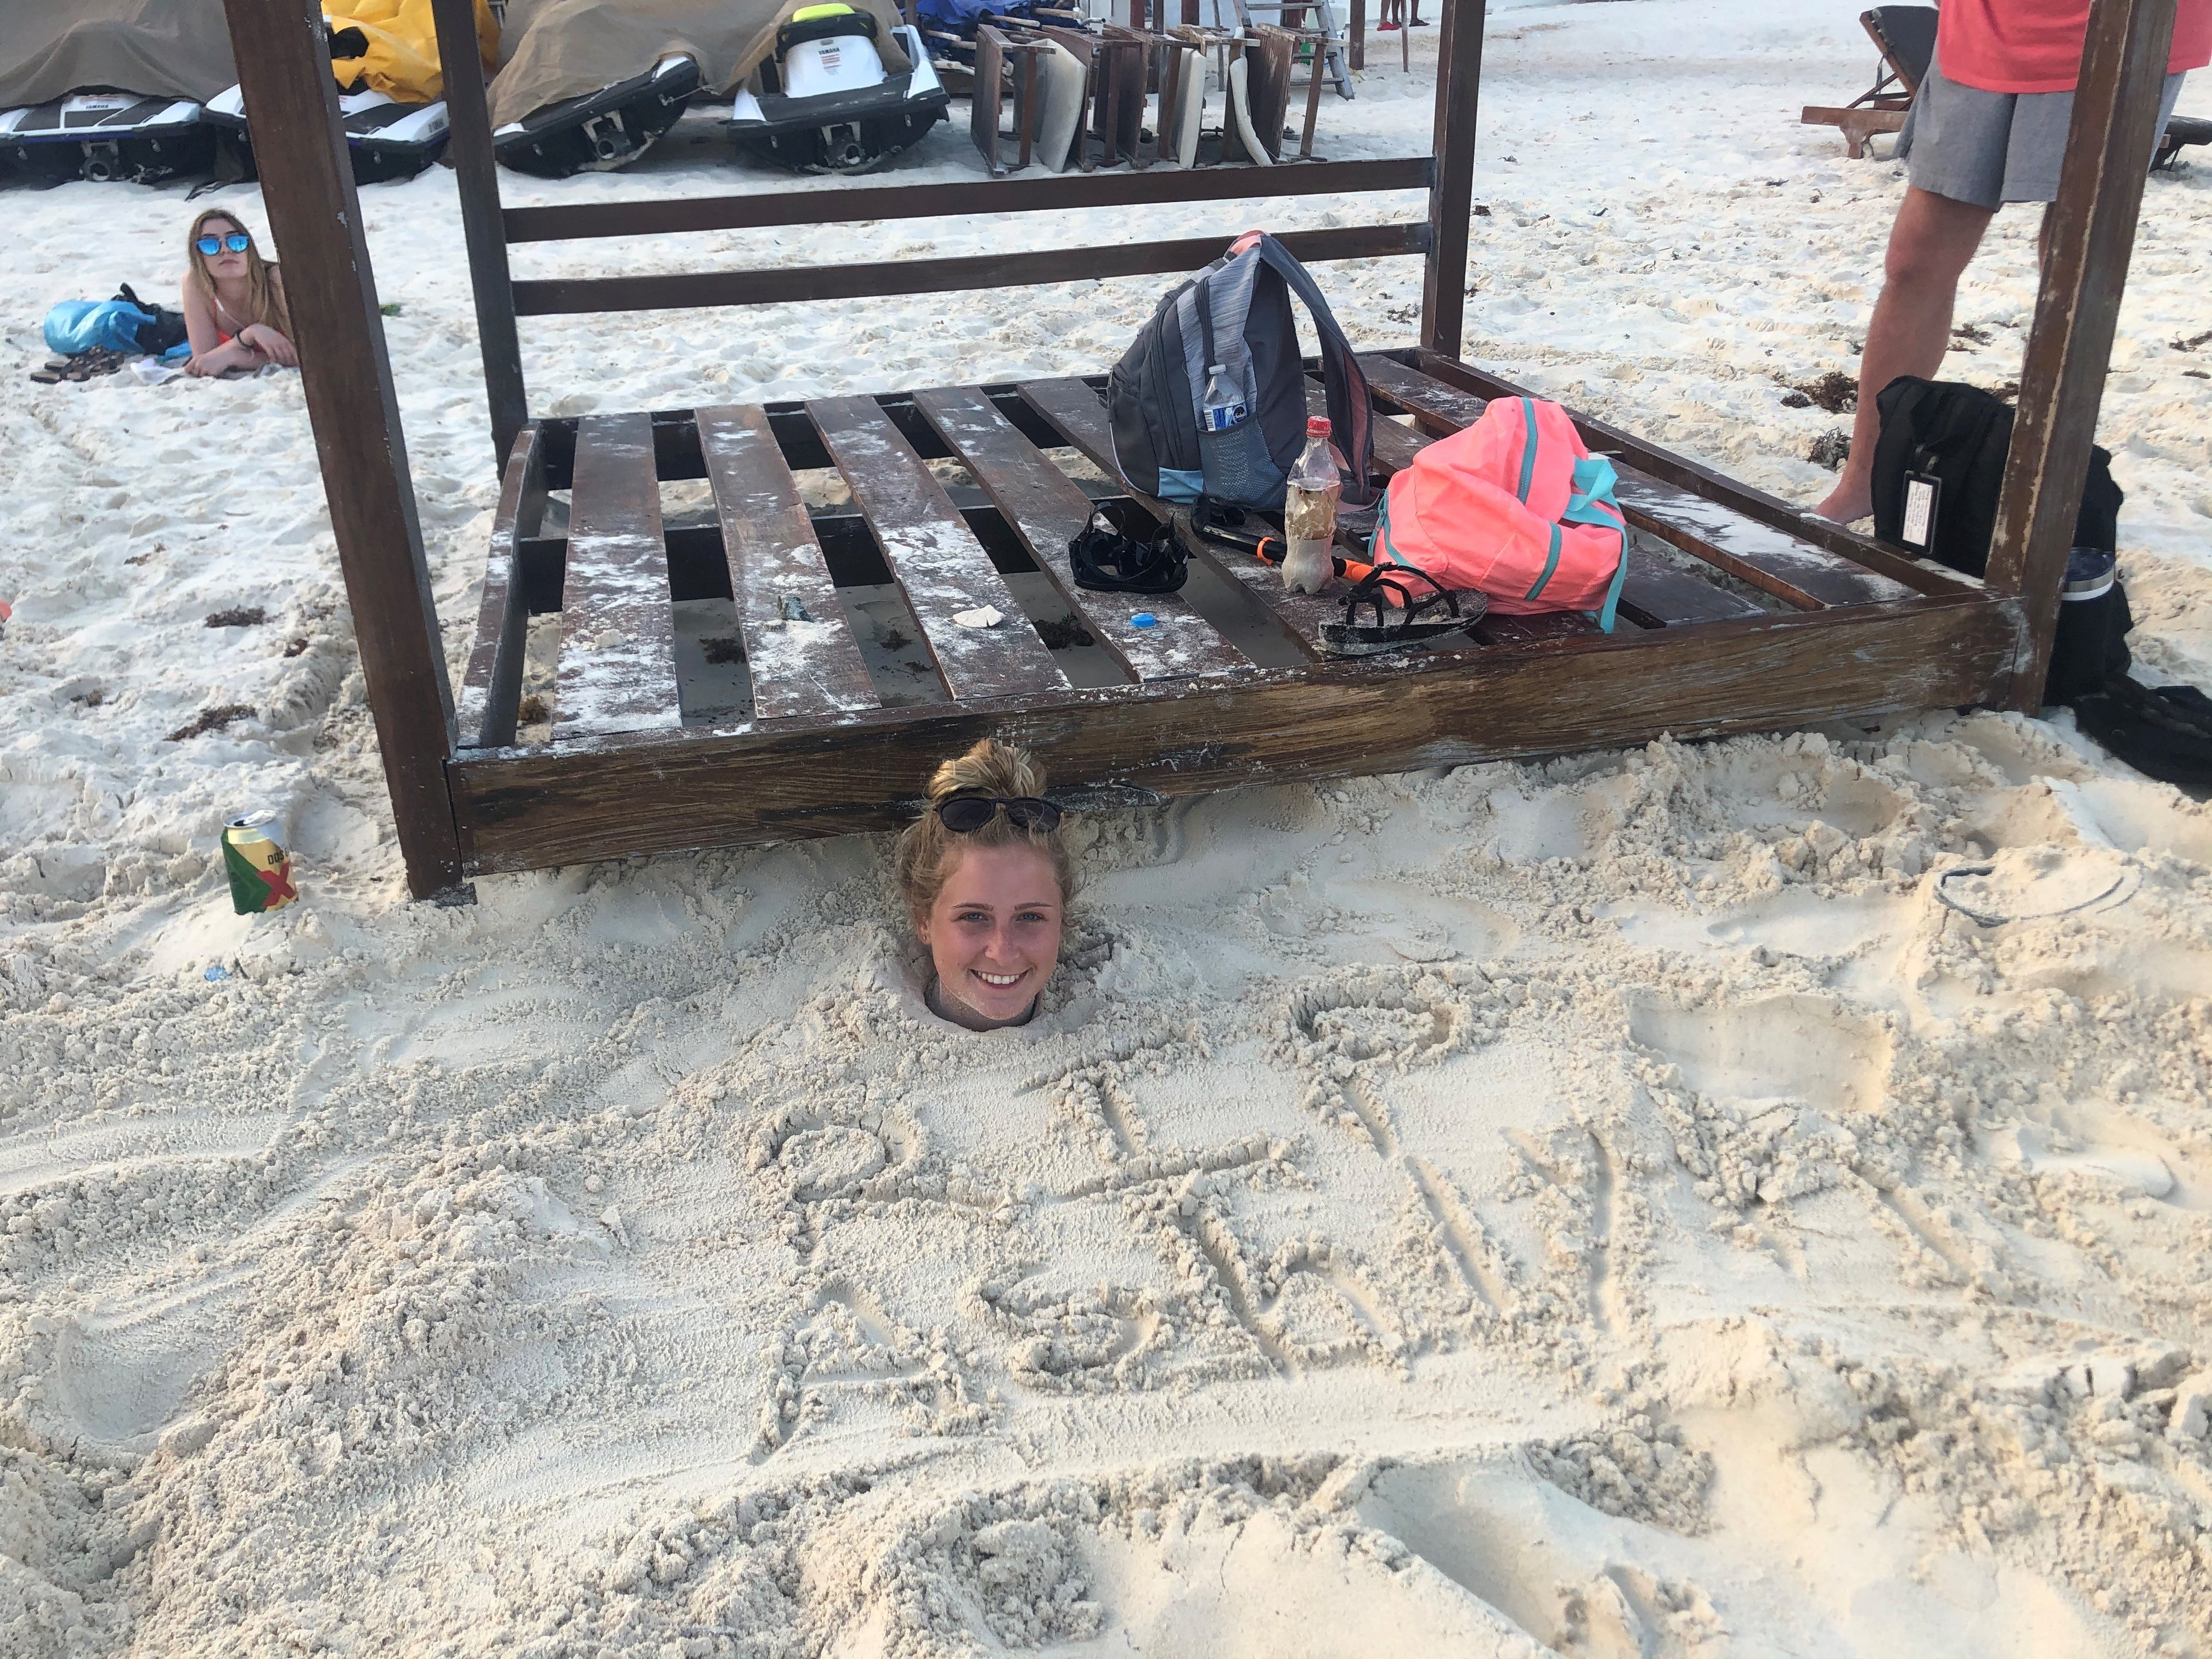 Ashlynn Steed, 22, a college student from Mississippi, was buried in the sand by her boyfriend and his family during a spring break visit to Cancun, Mexico.